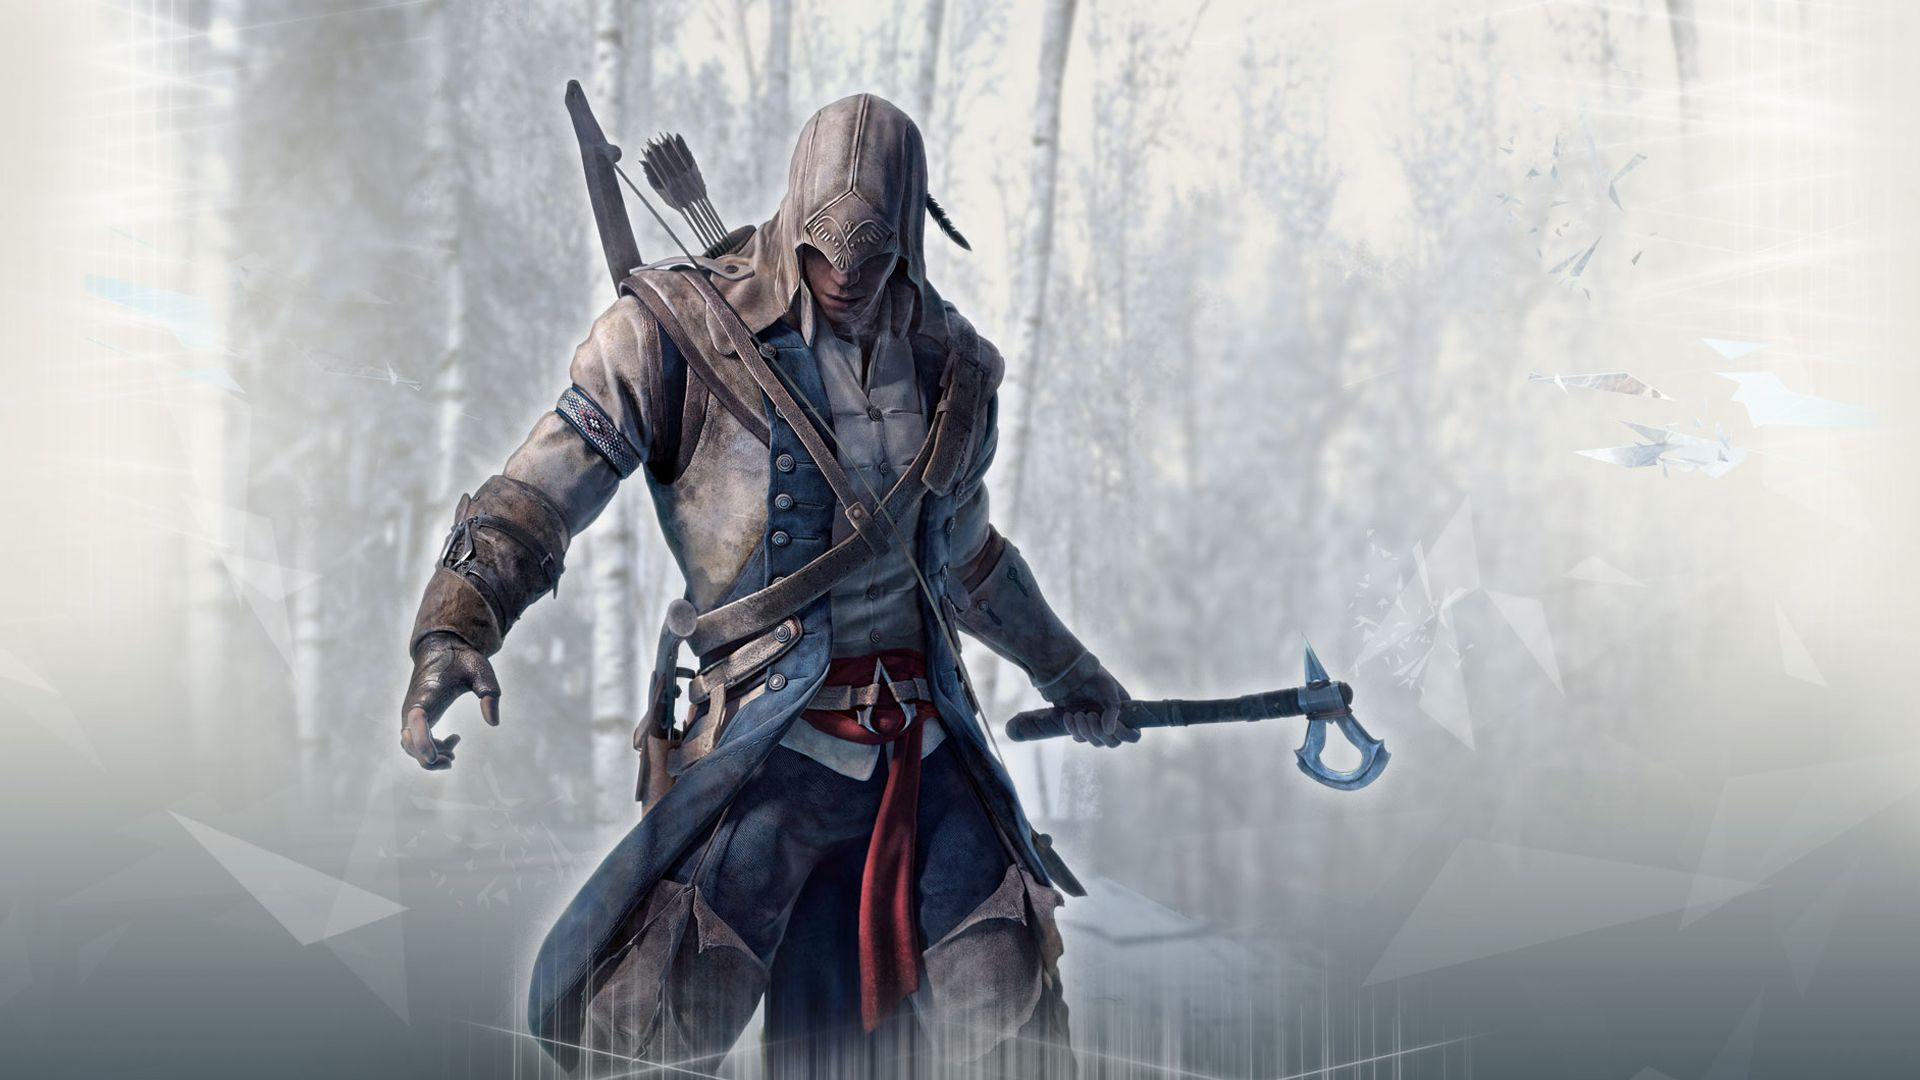 Free Download Connor Kenway Assassins Creed Iii Wallpaper 16998